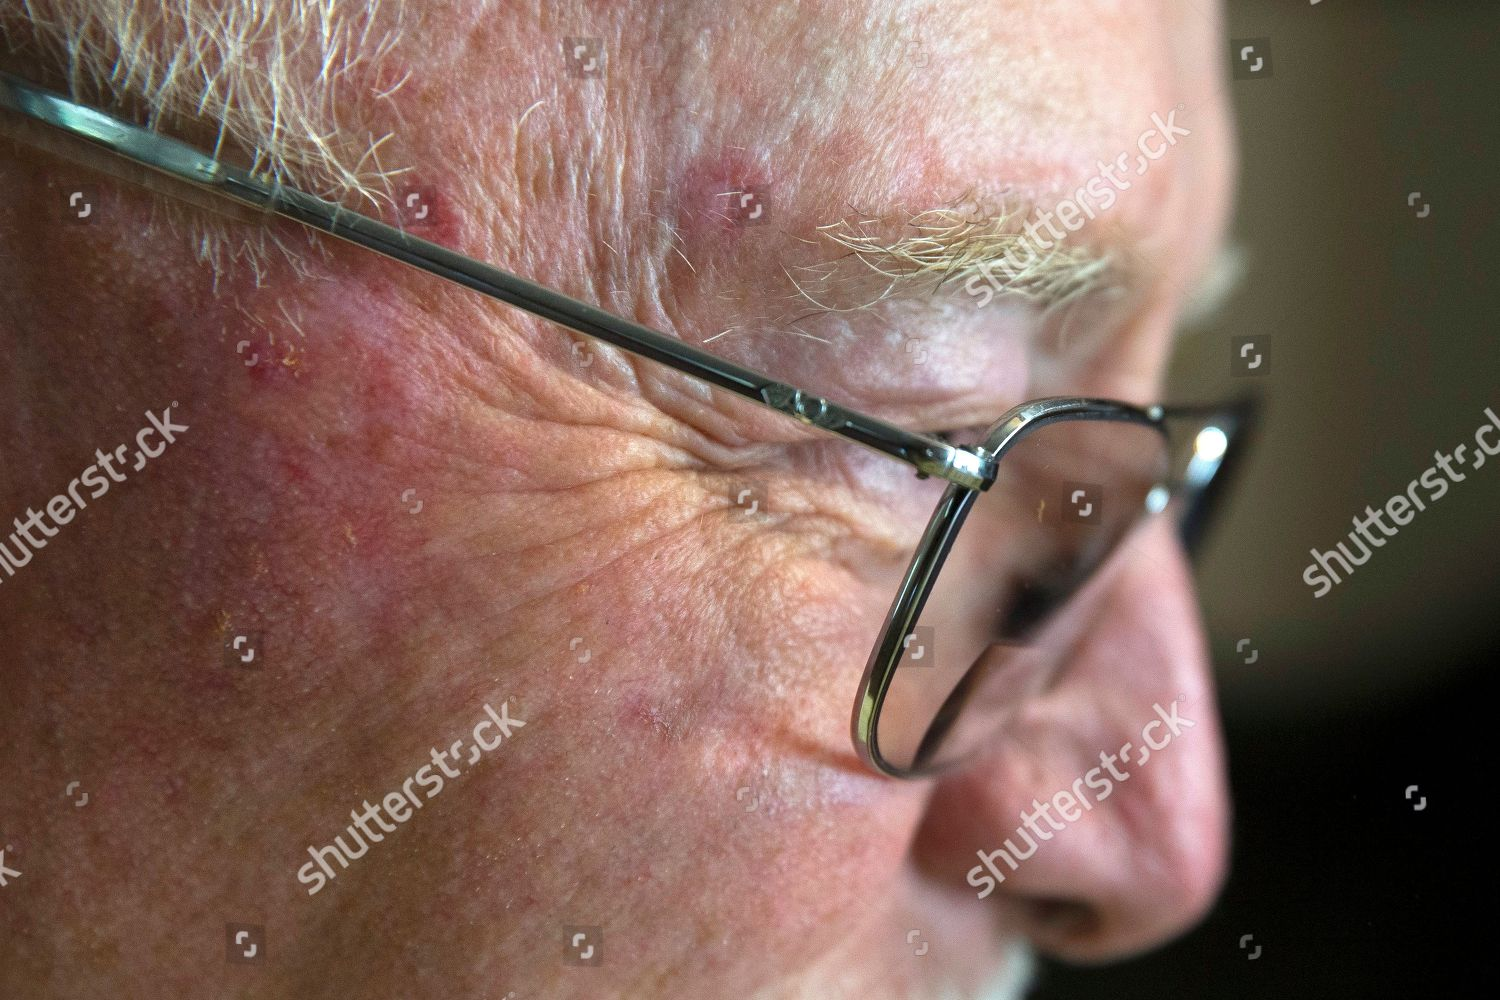 Ed Kienle Red Marks Skin Cancer Removals Editorial Stock Photo Stock Image Shutterstock